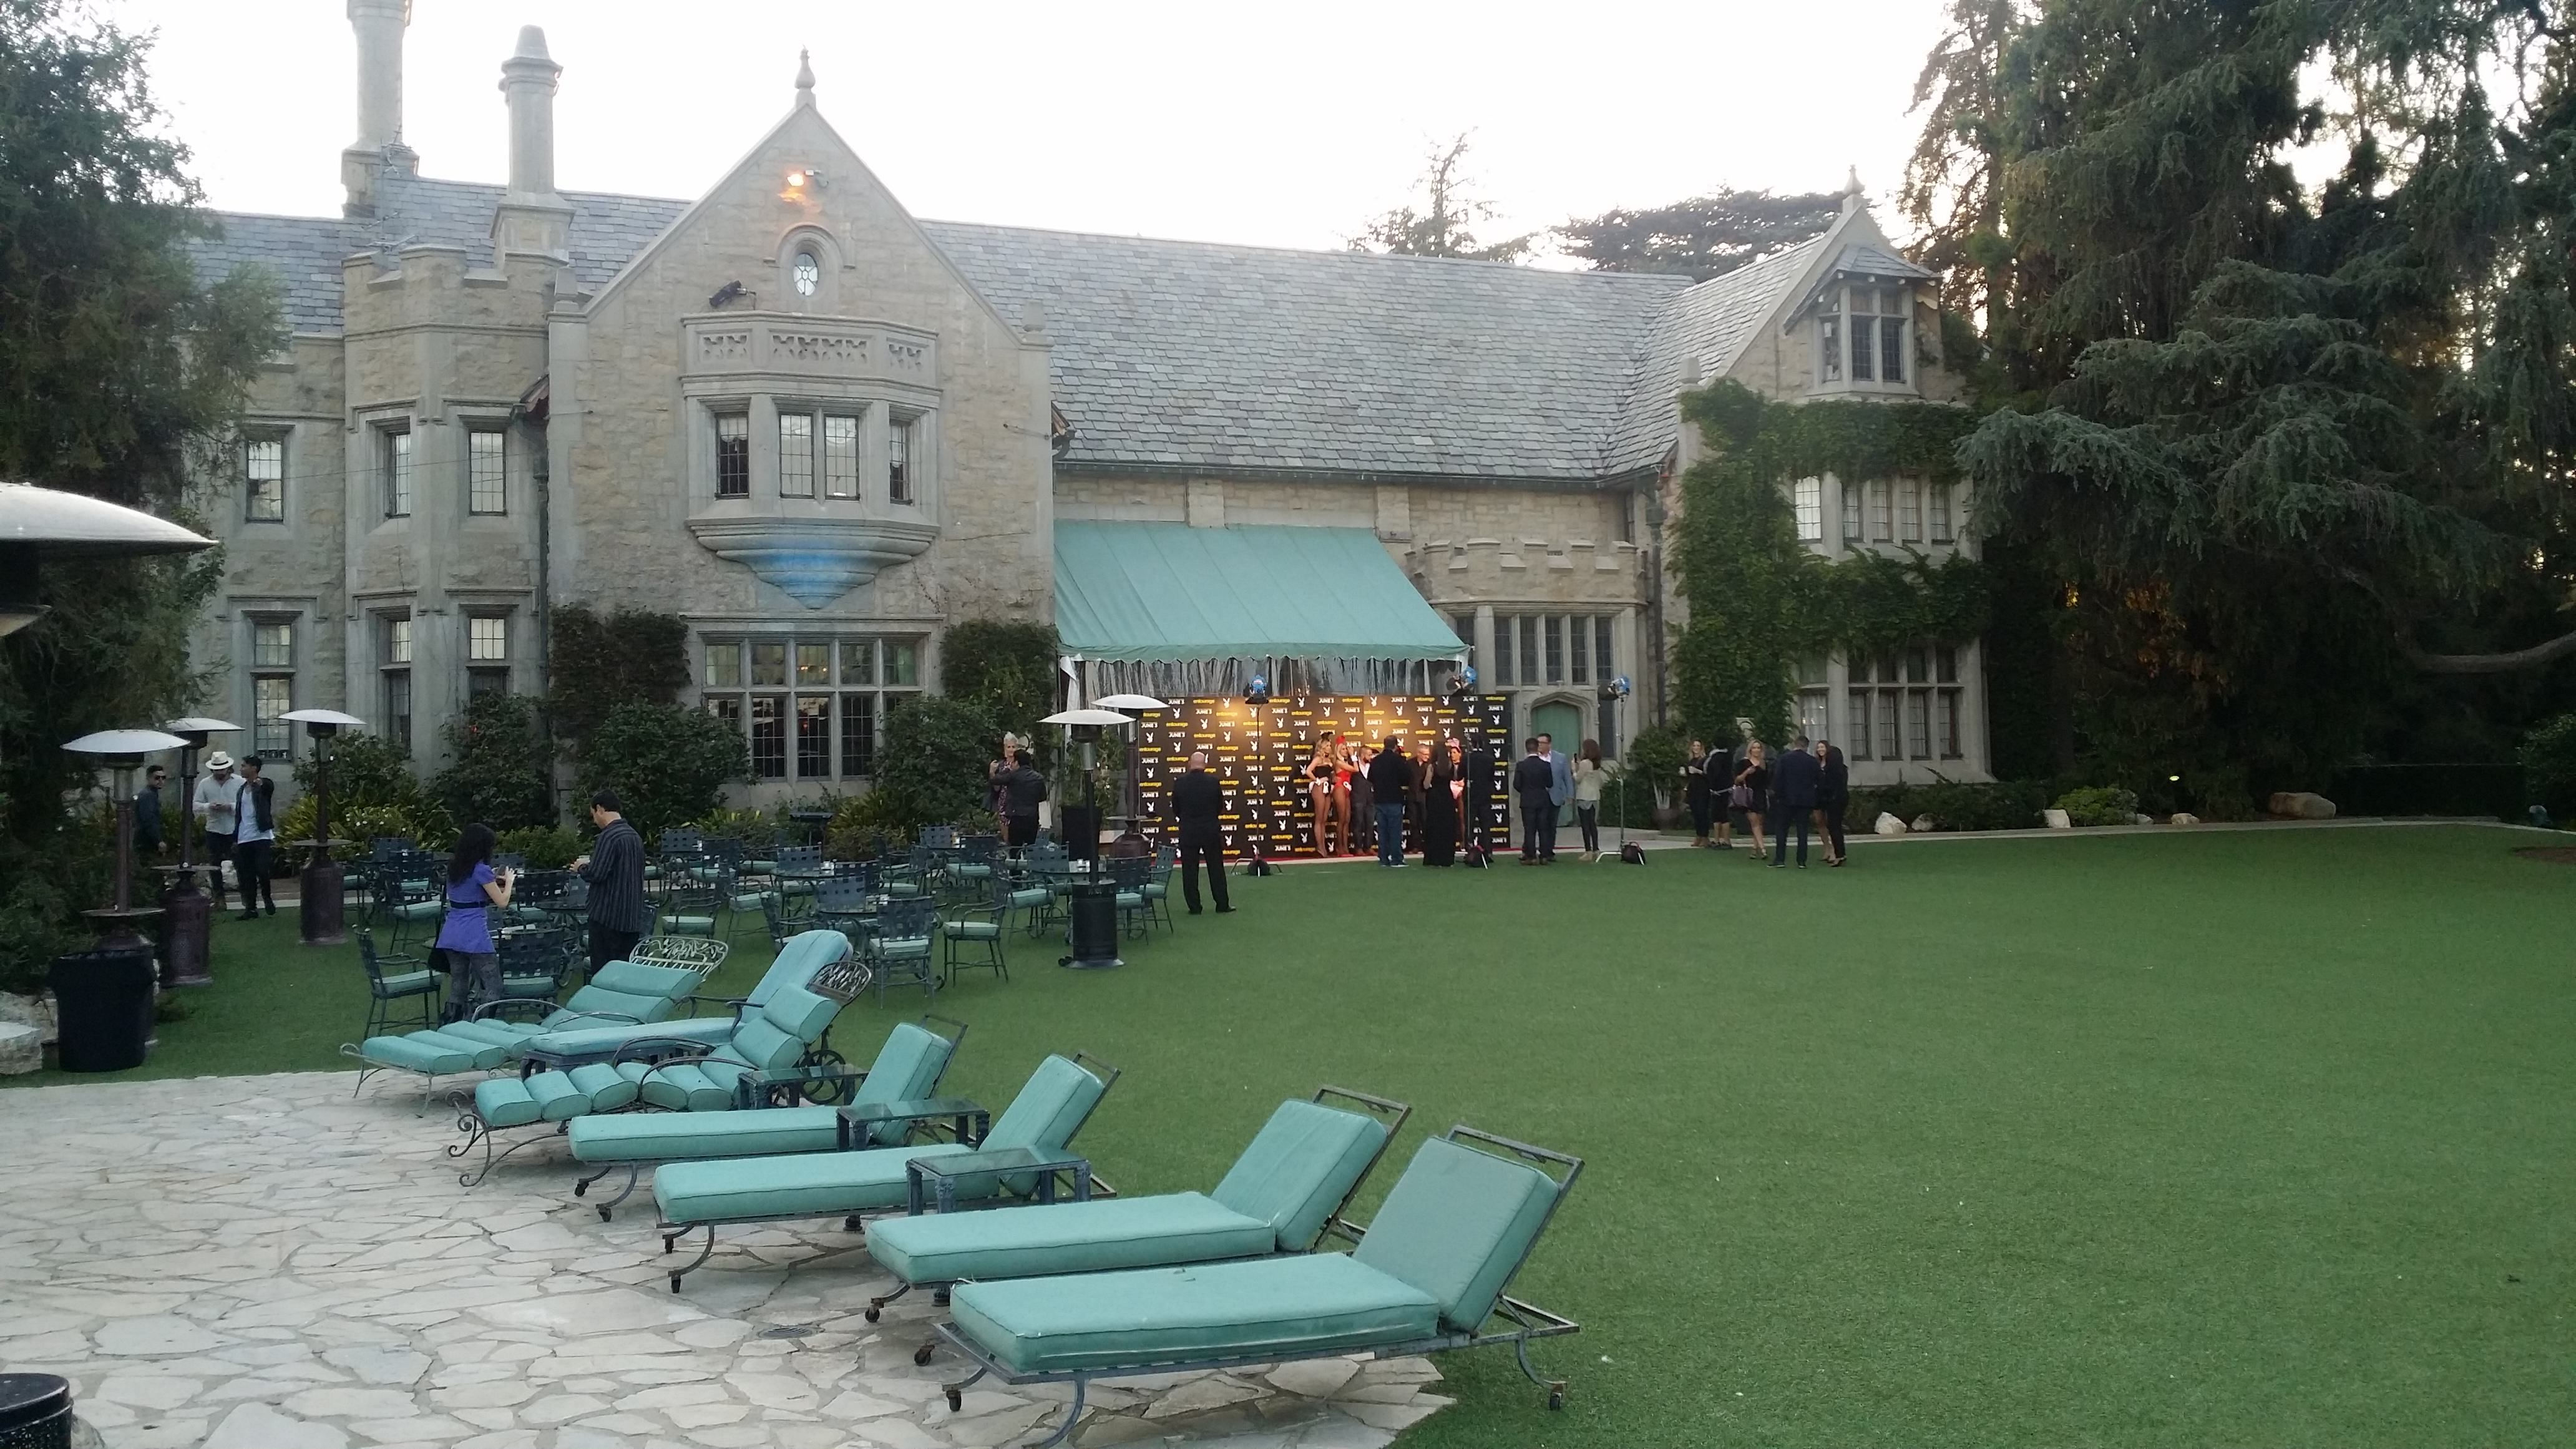 20150520 192733 We Were Invited To The Playboy Mansion To Watch Entourage And It Was Exactly What We Expected!